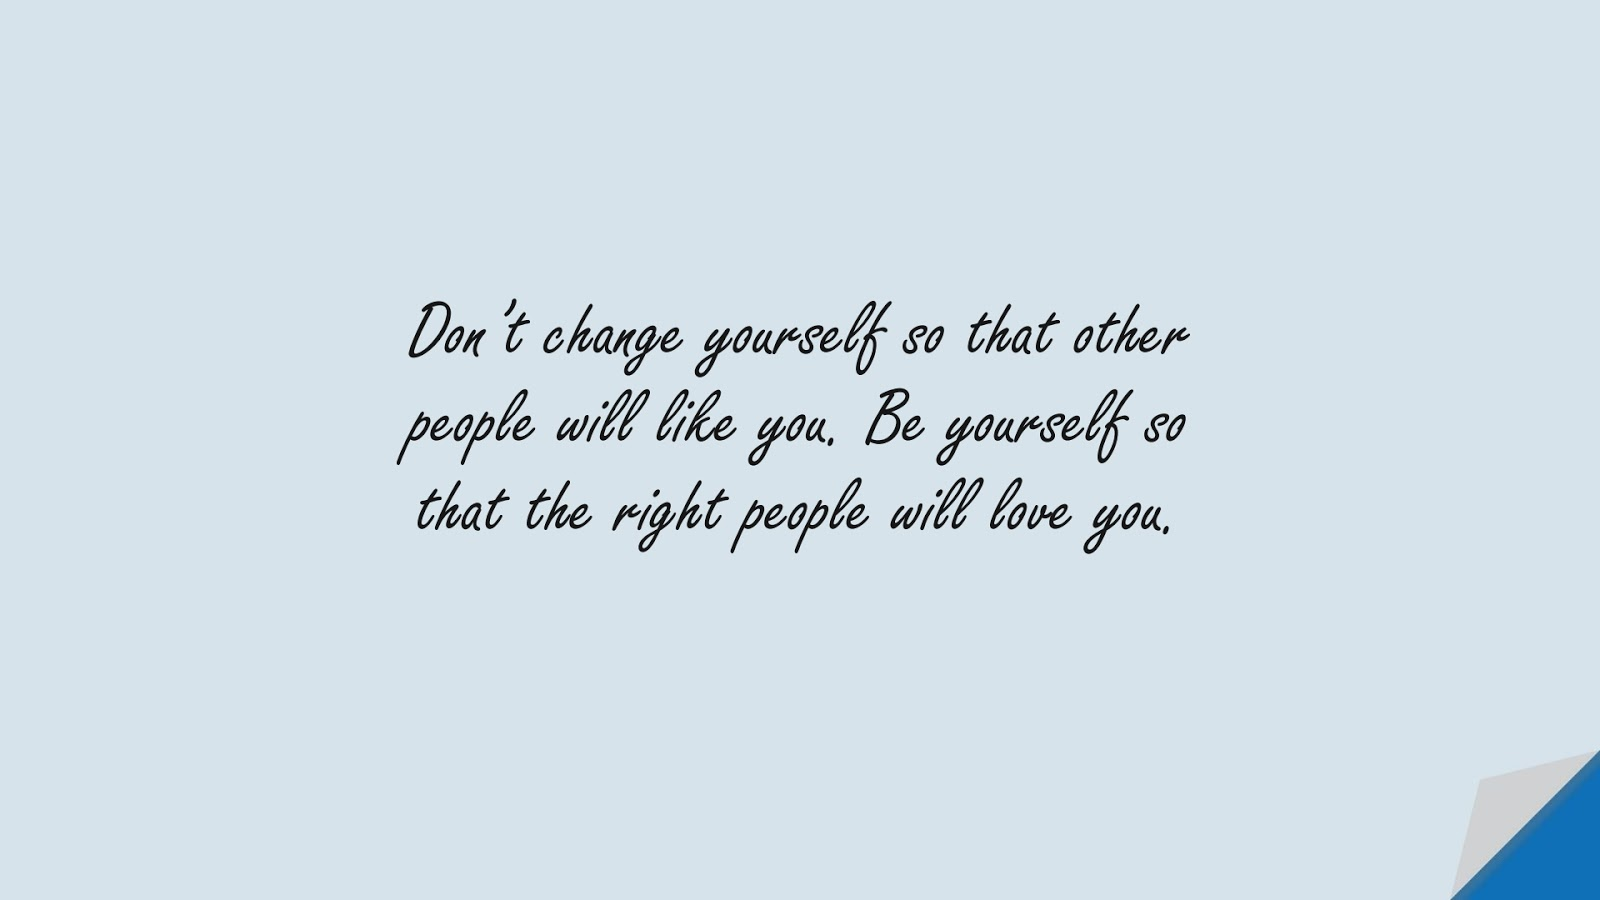 Don't change yourself so that other people will like you. Be yourself so that the right people will love you.FALSE